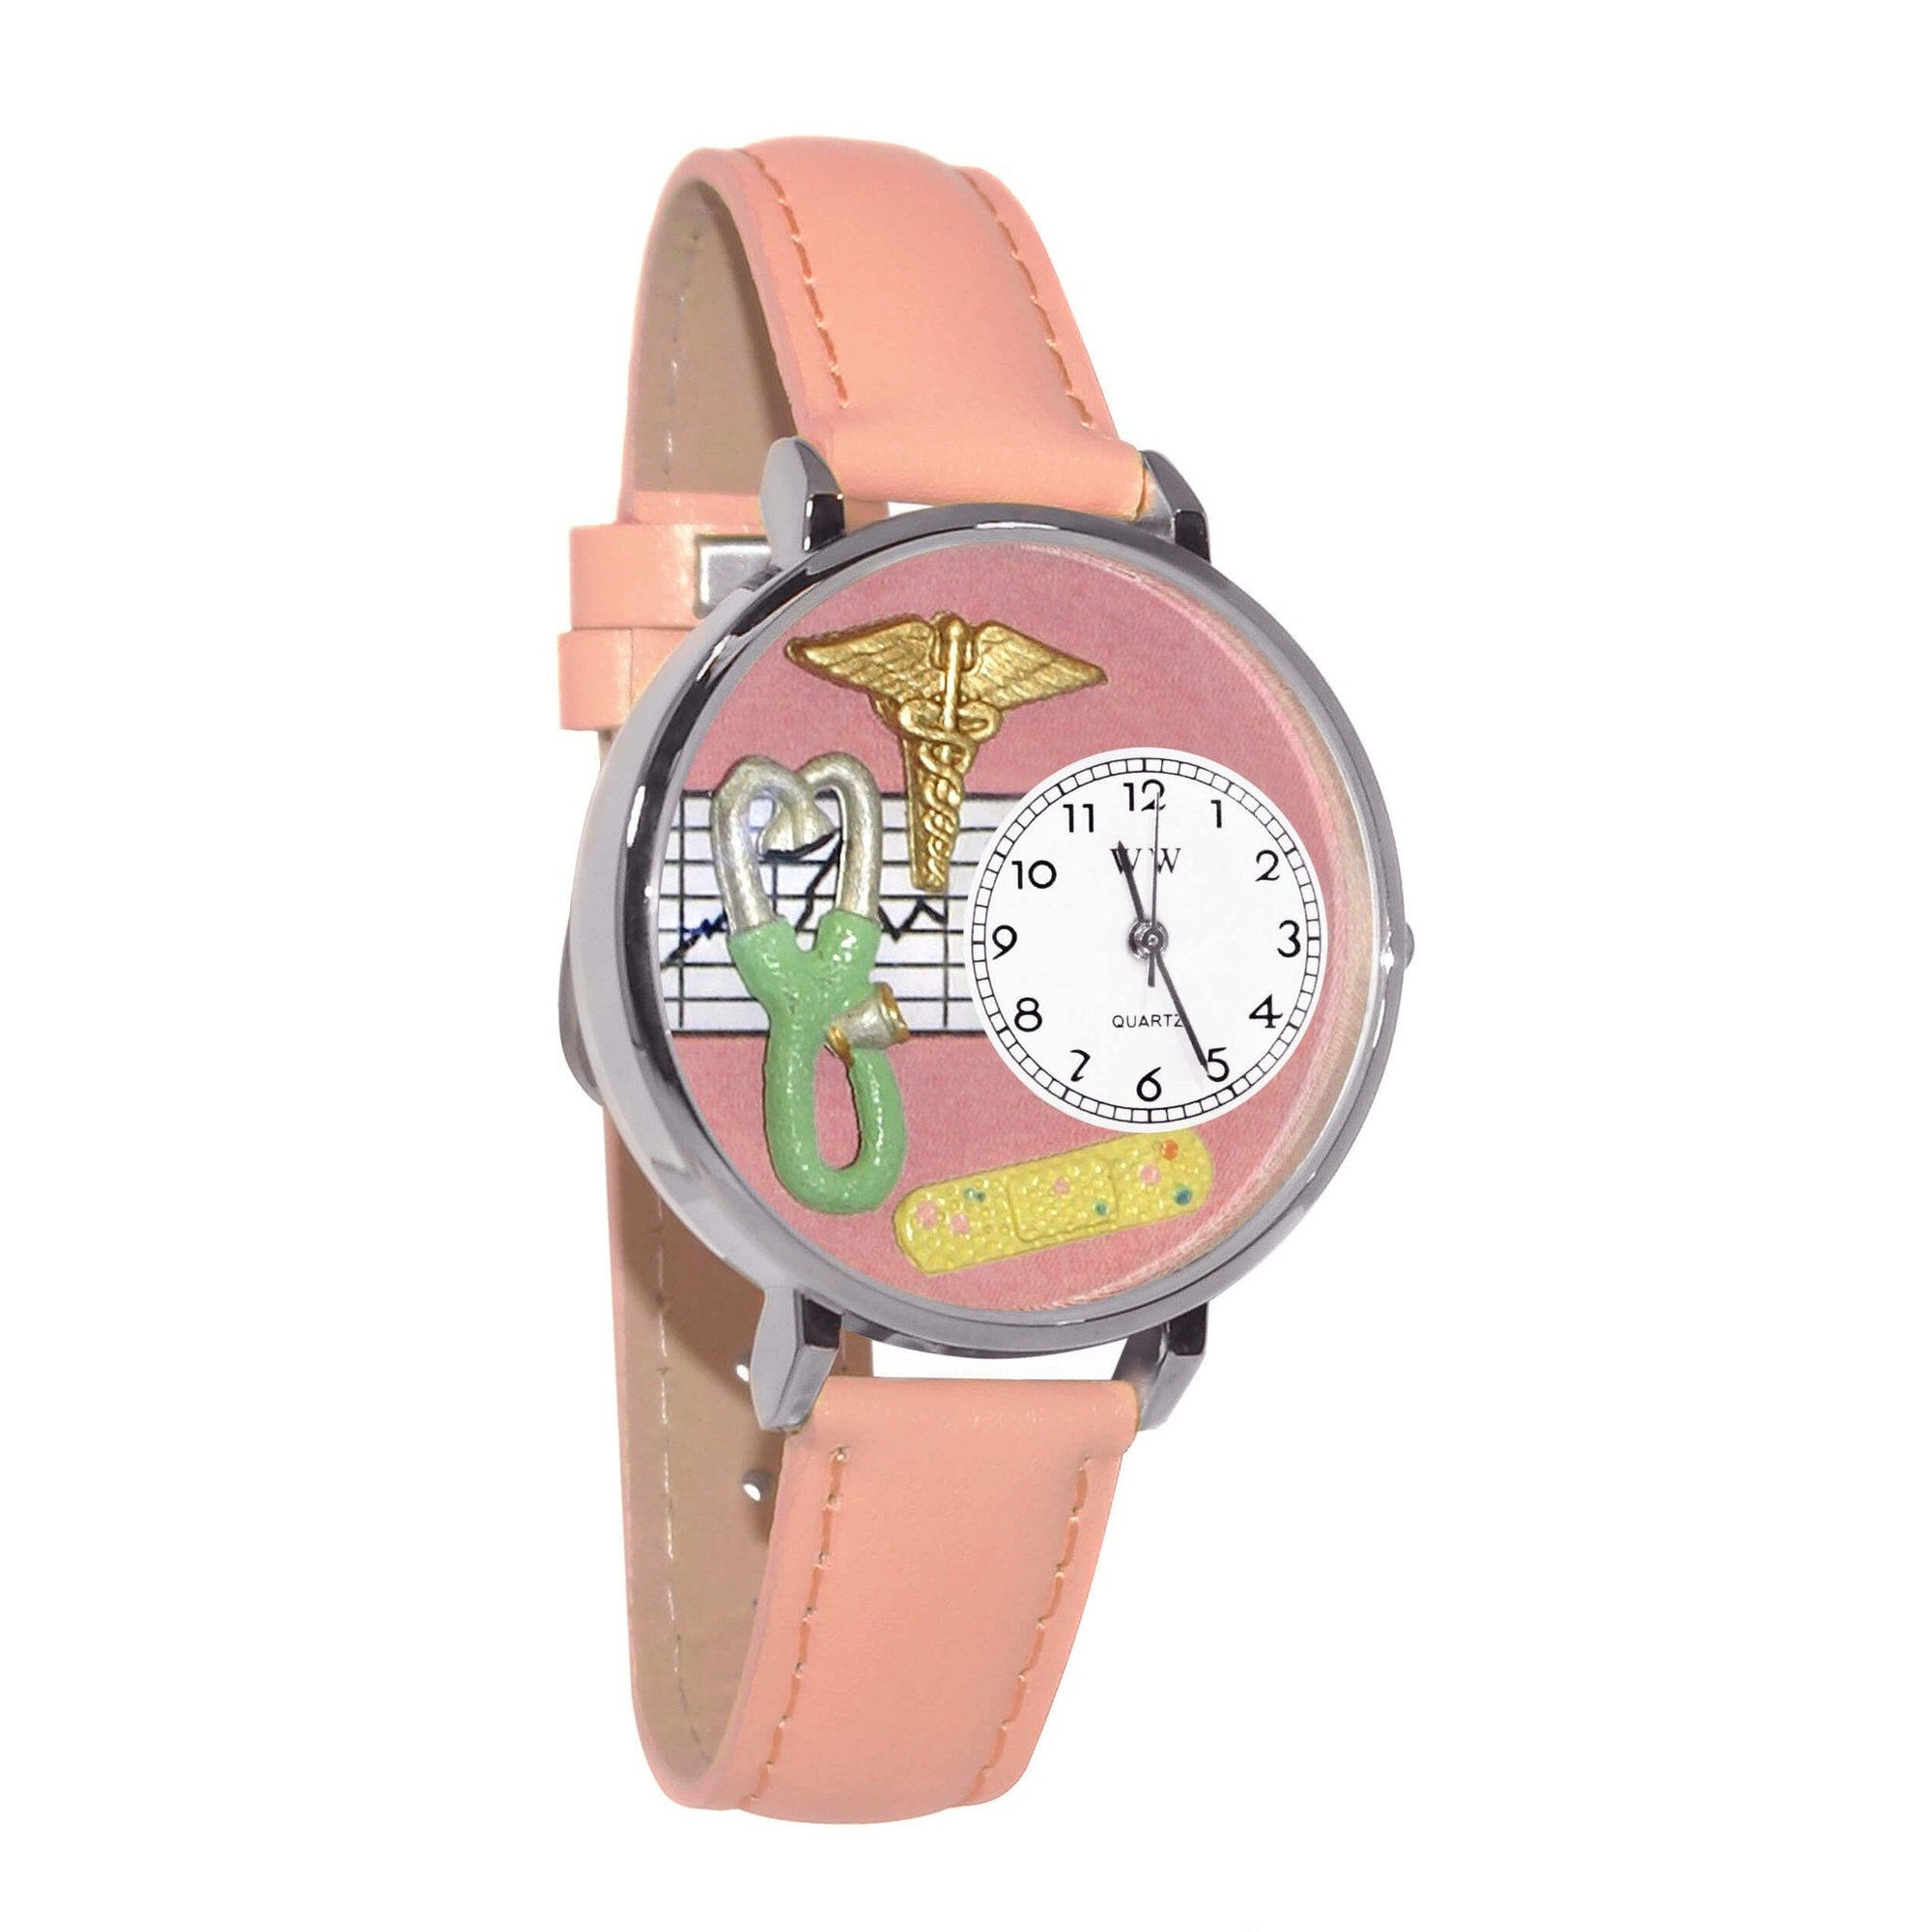 Nurse 2 Pink Watch in Silver (Large)-Watch-Whimsical Gifts-Top Notch Gift Shop